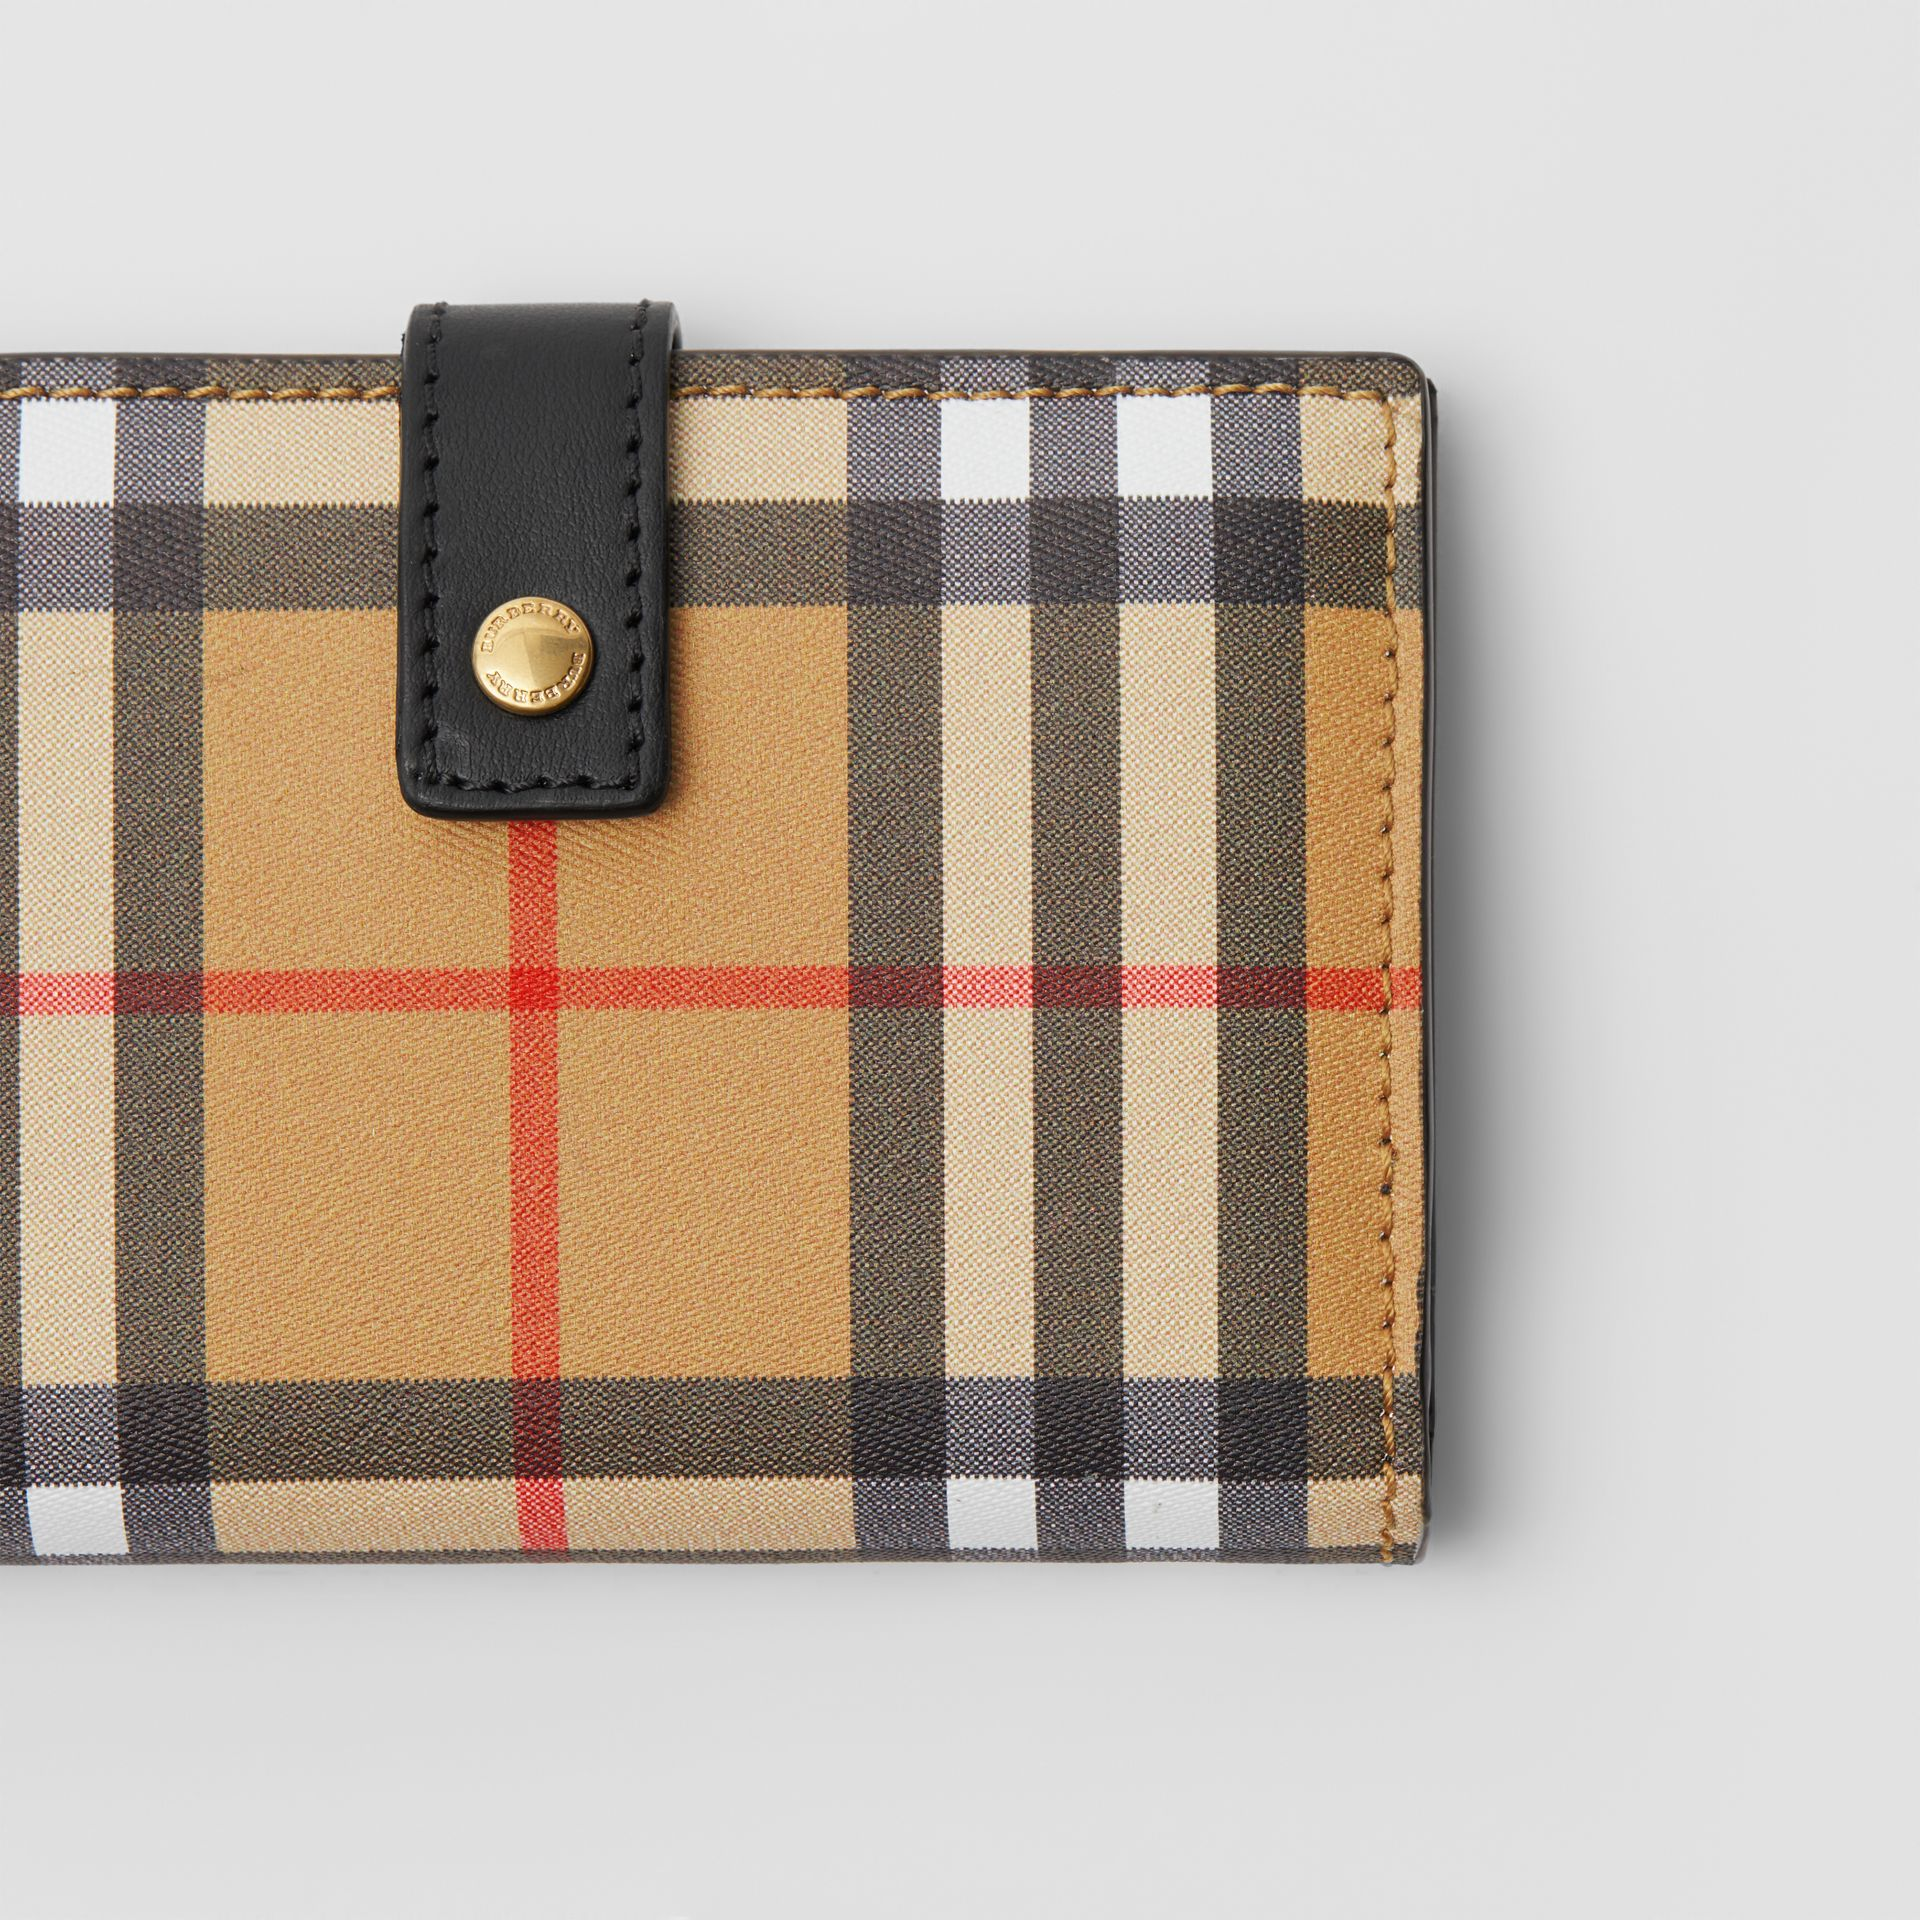 Vintage Check and Leather Folding Wallet in Black - Women | Burberry Hong Kong S.A.R - gallery image 1